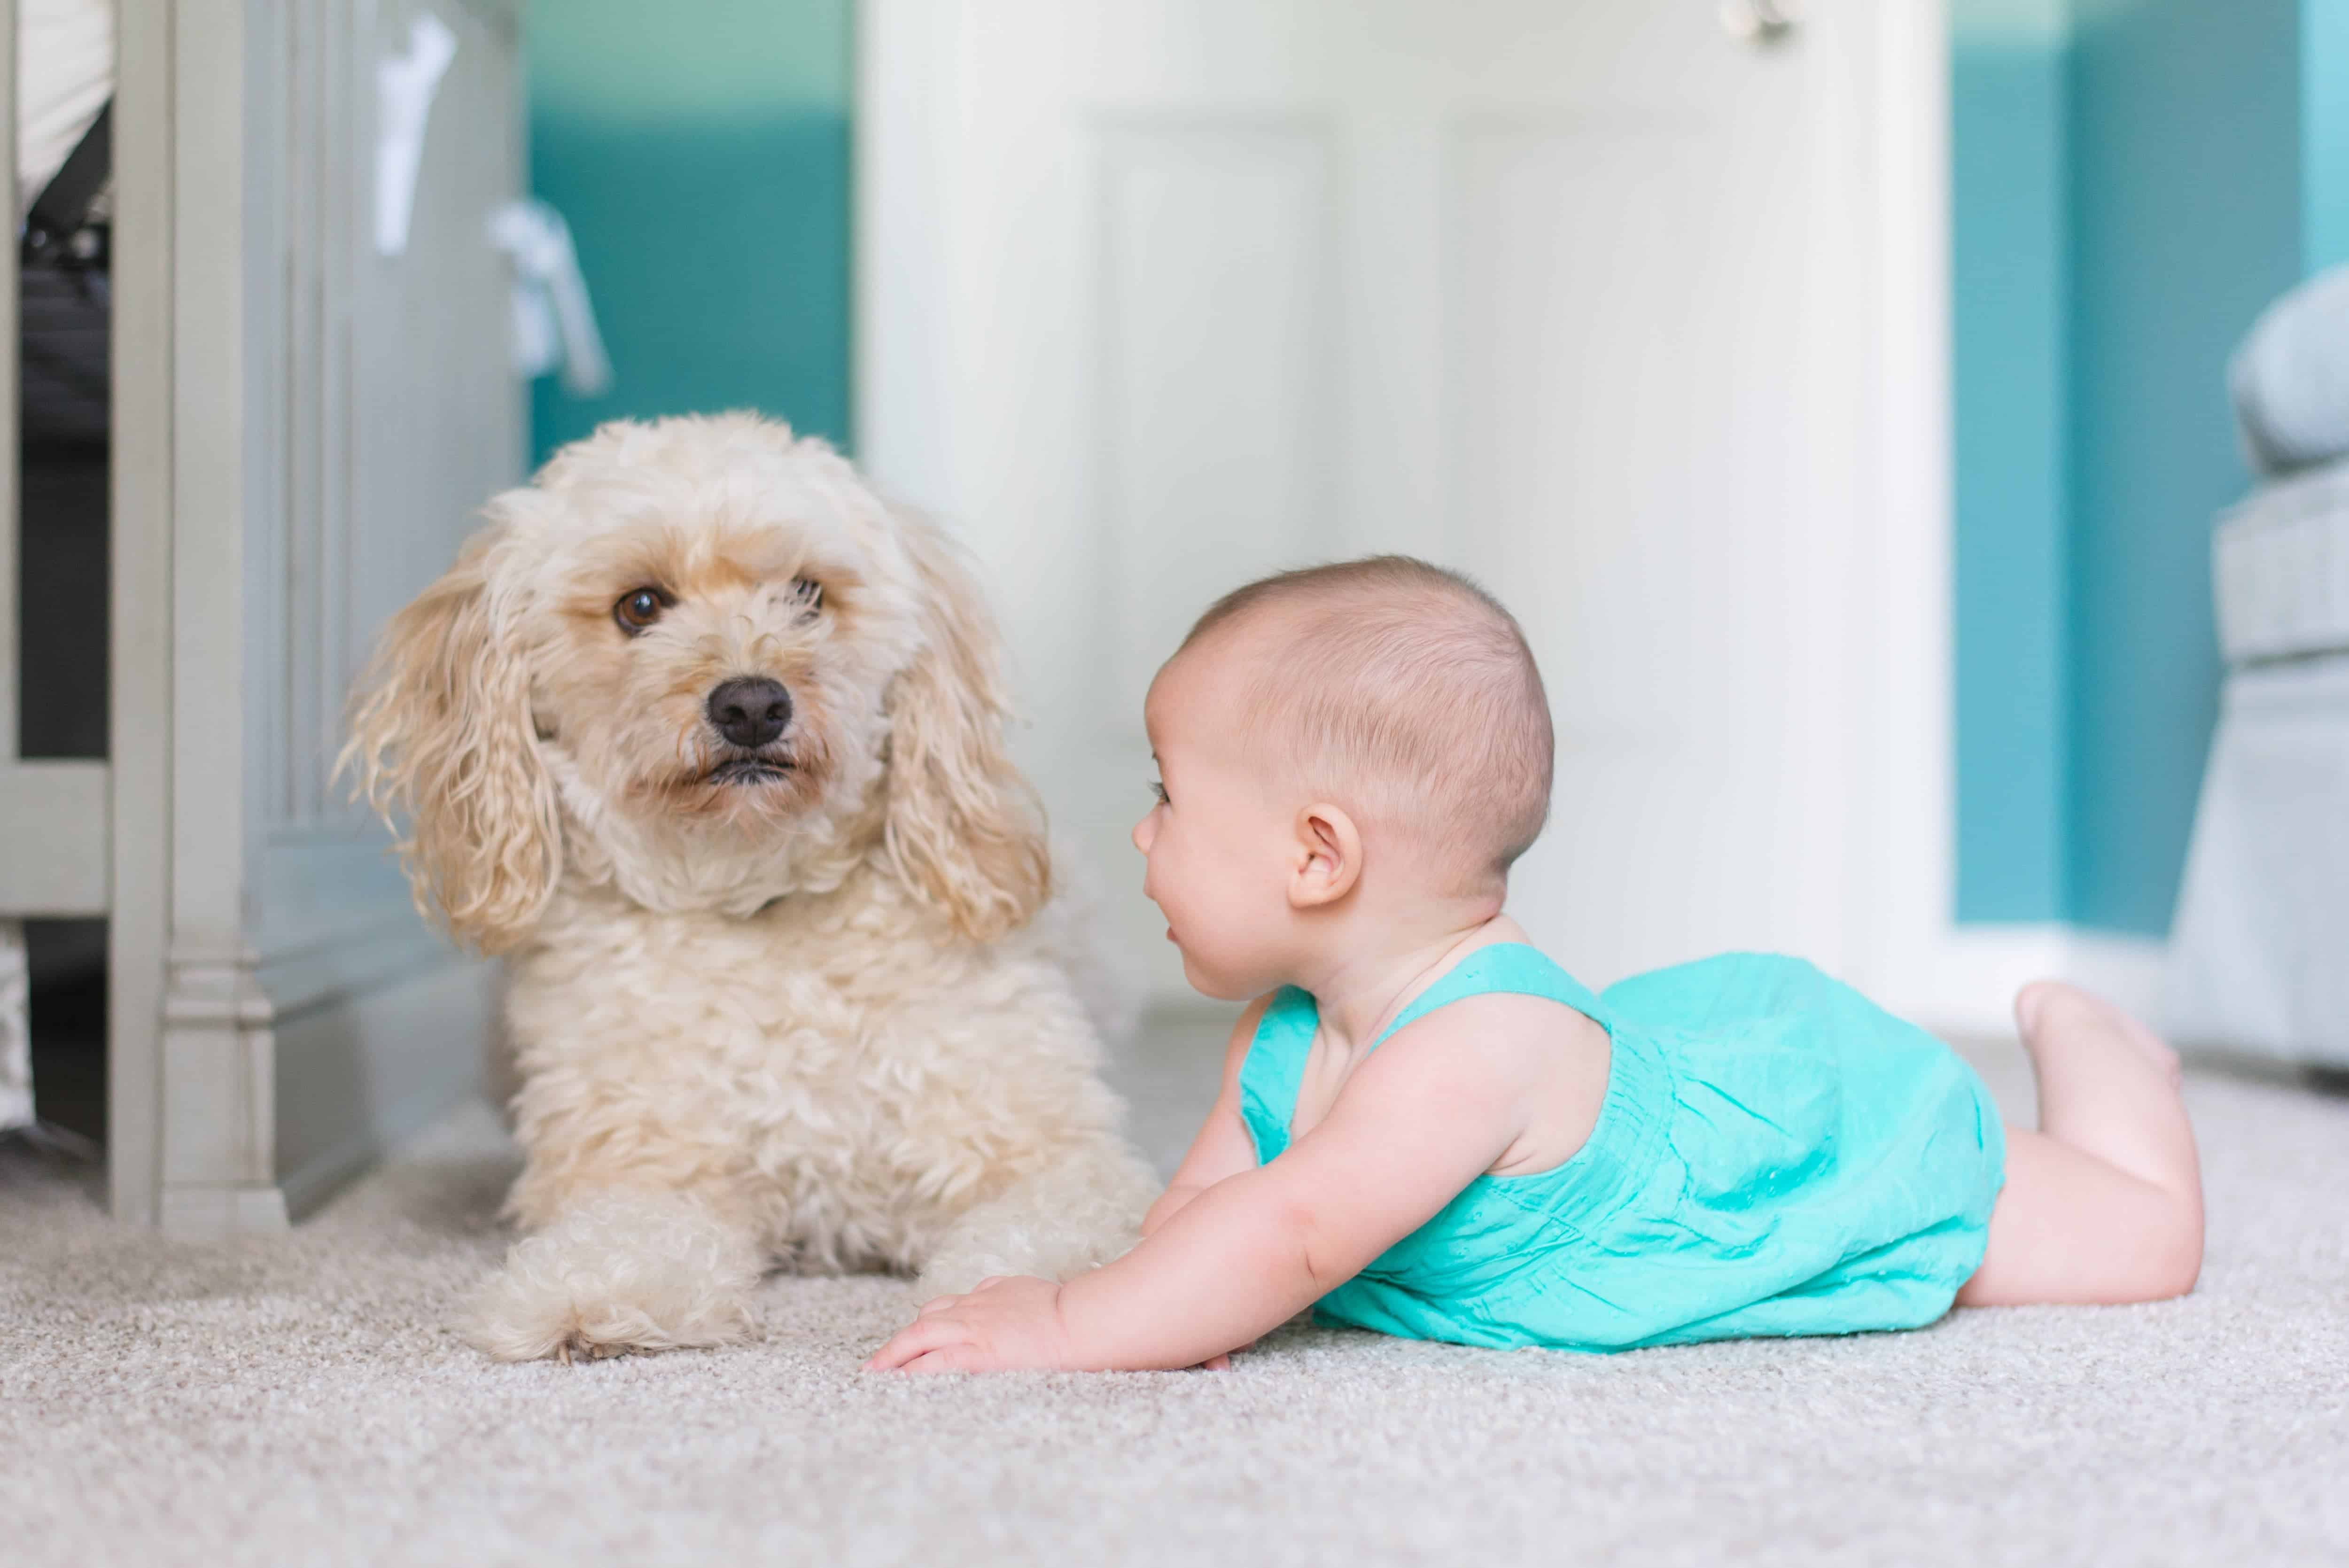 baby and dog on the floor